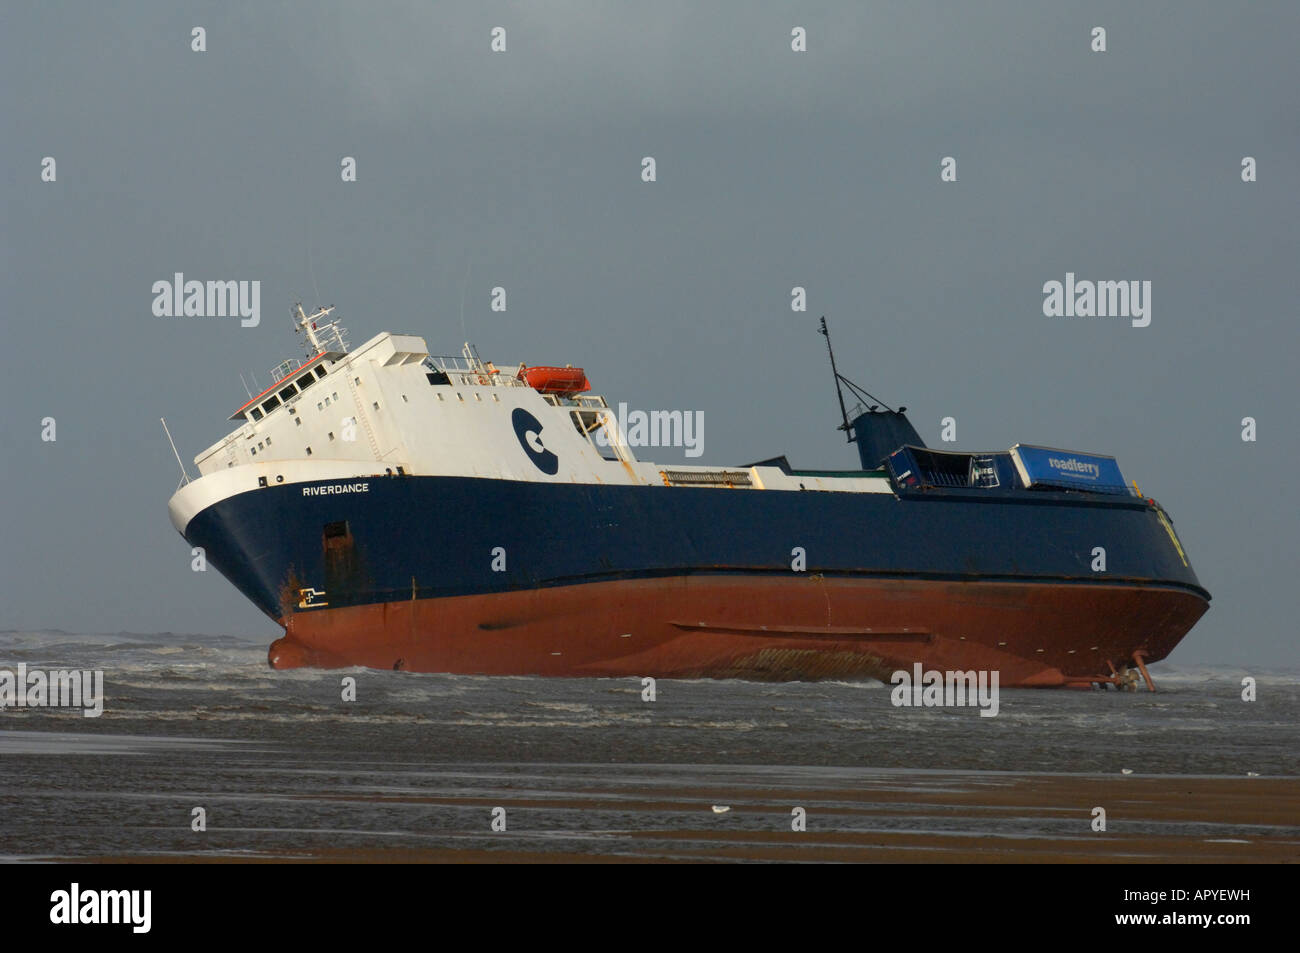 The Ro-Ro Ferry 'Riverdance' stricken and beached at Cleveleys near Blackpool - Stock Image